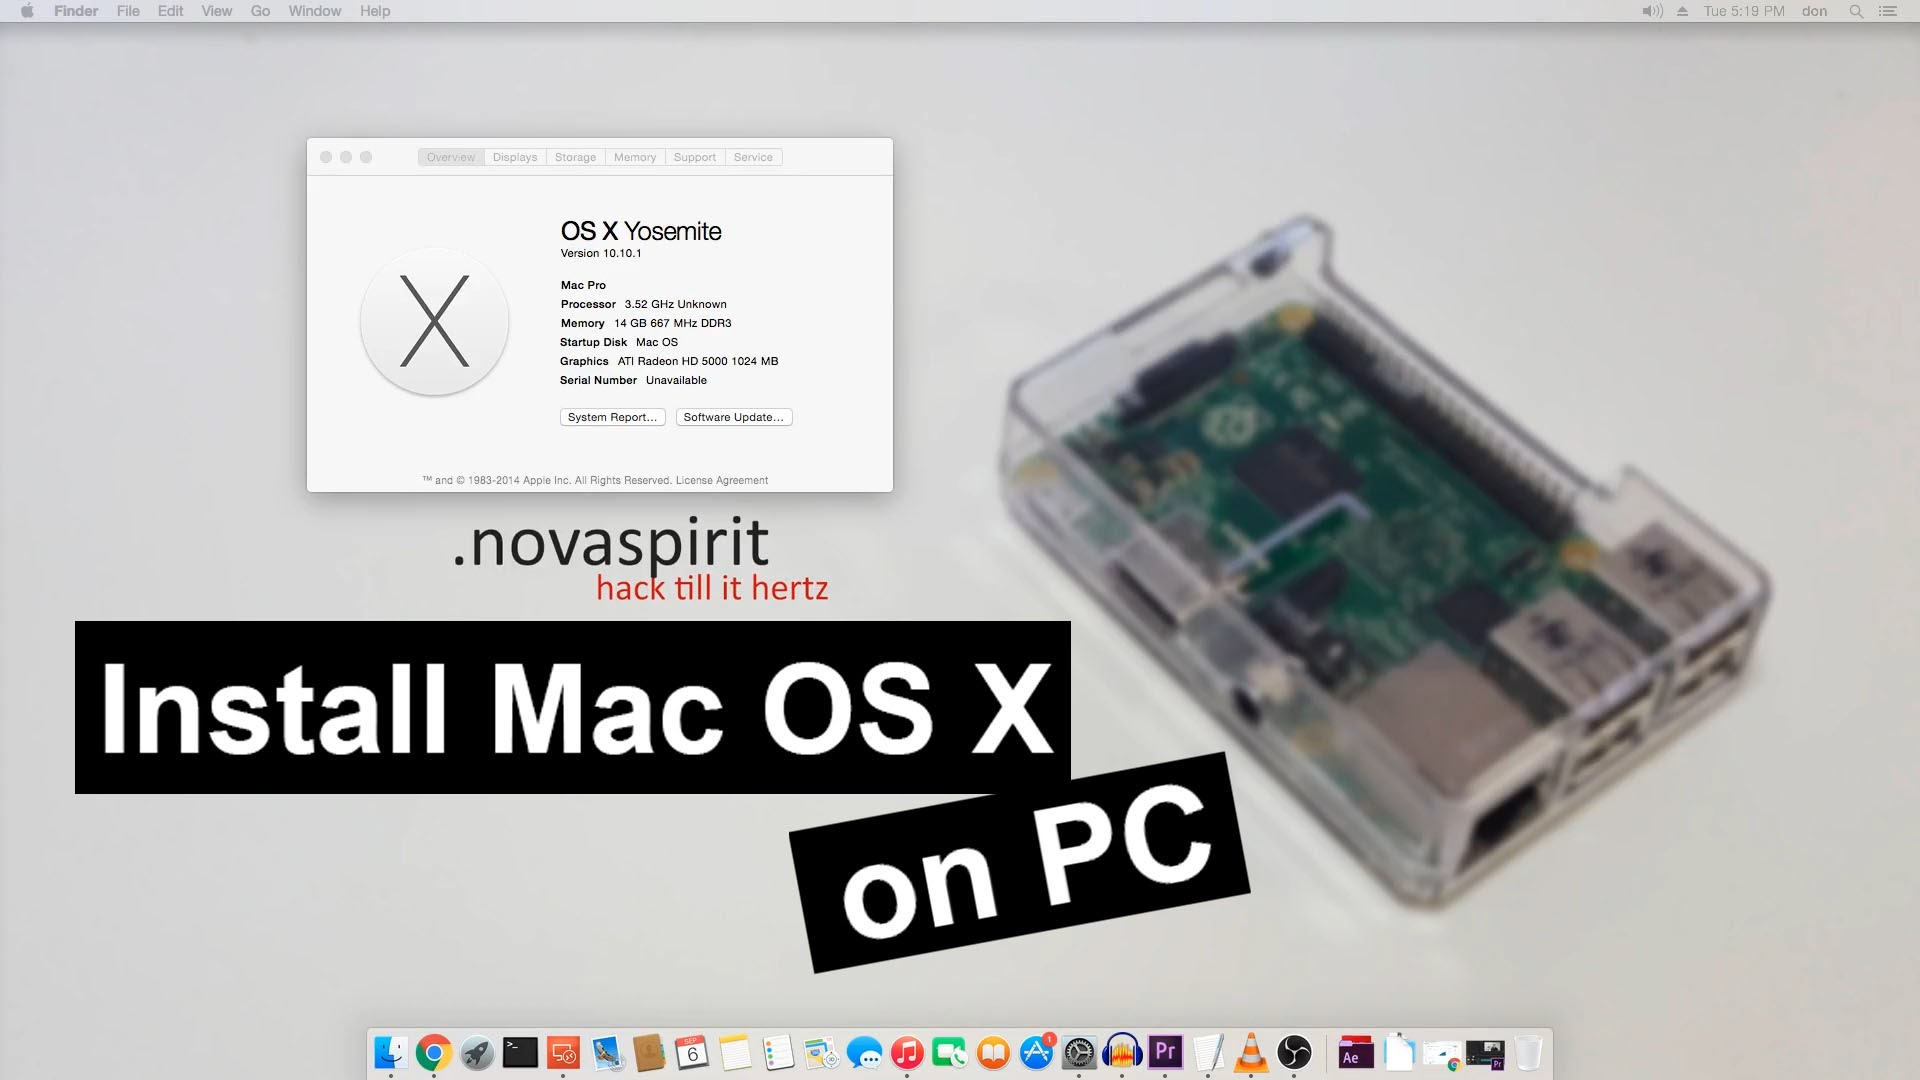 Installing Mac OS on PC